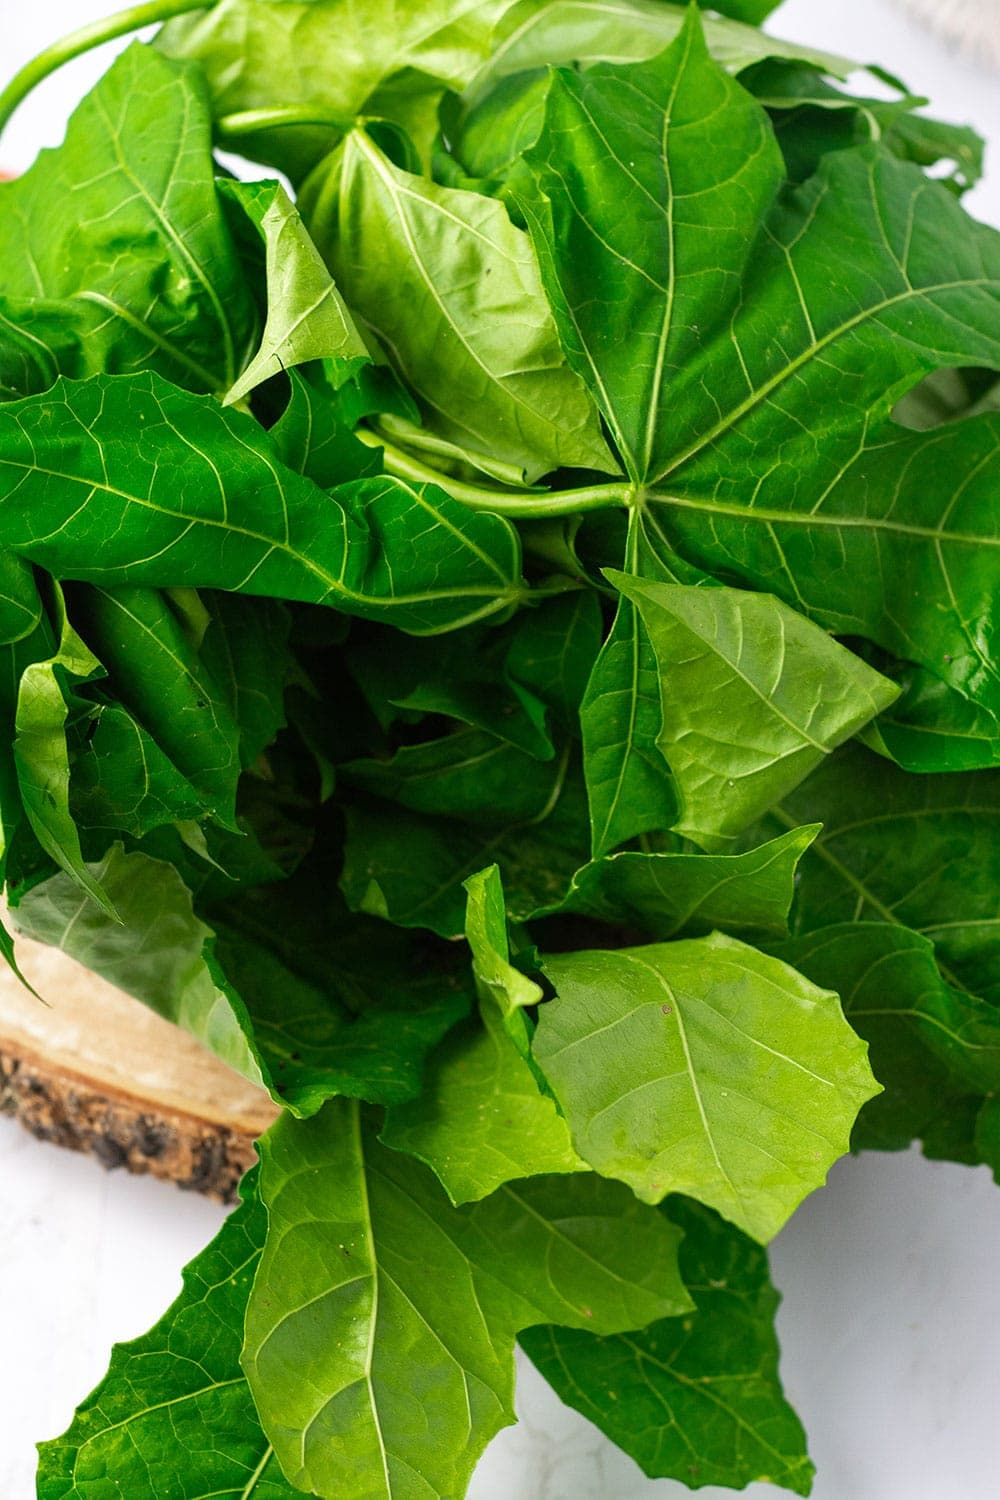 Chaya leaves for steamed chaya -spinach tree